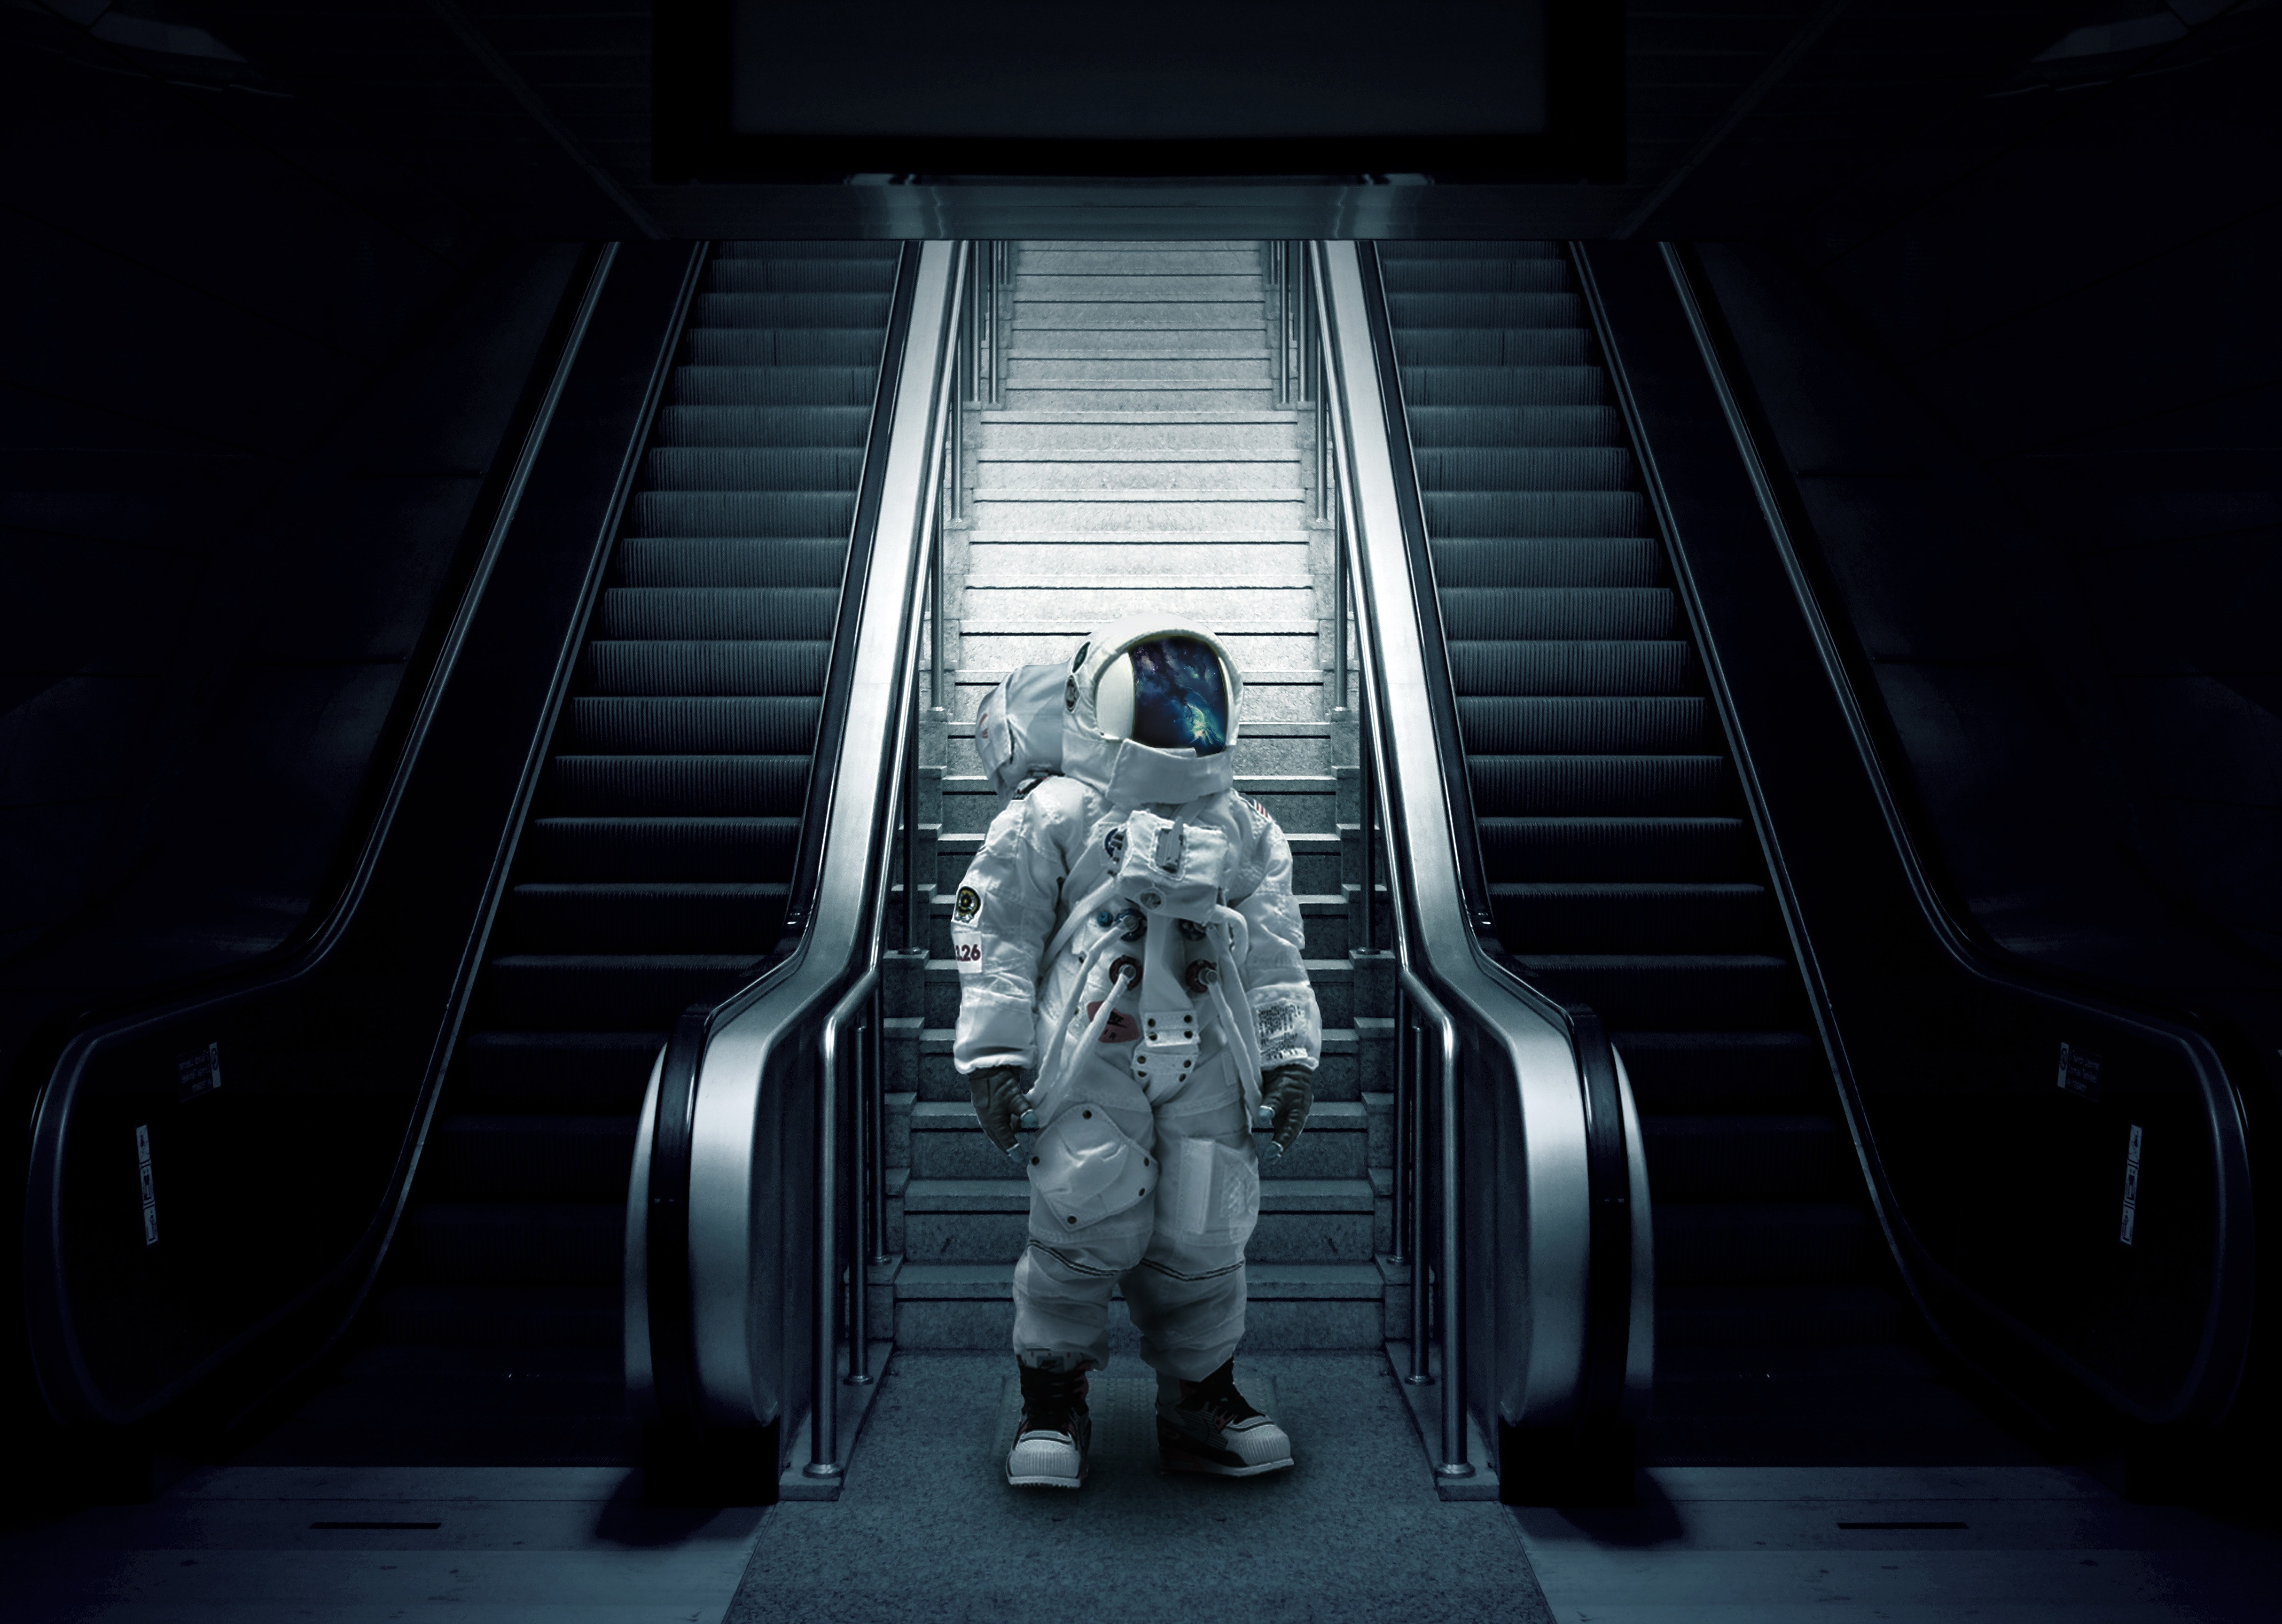 124947 download wallpaper Miscellanea, Miscellaneous, Astronaut, Cosmonaut, Spacesuit, Space Suit, Escalator, Stairs, Ladder screensavers and pictures for free